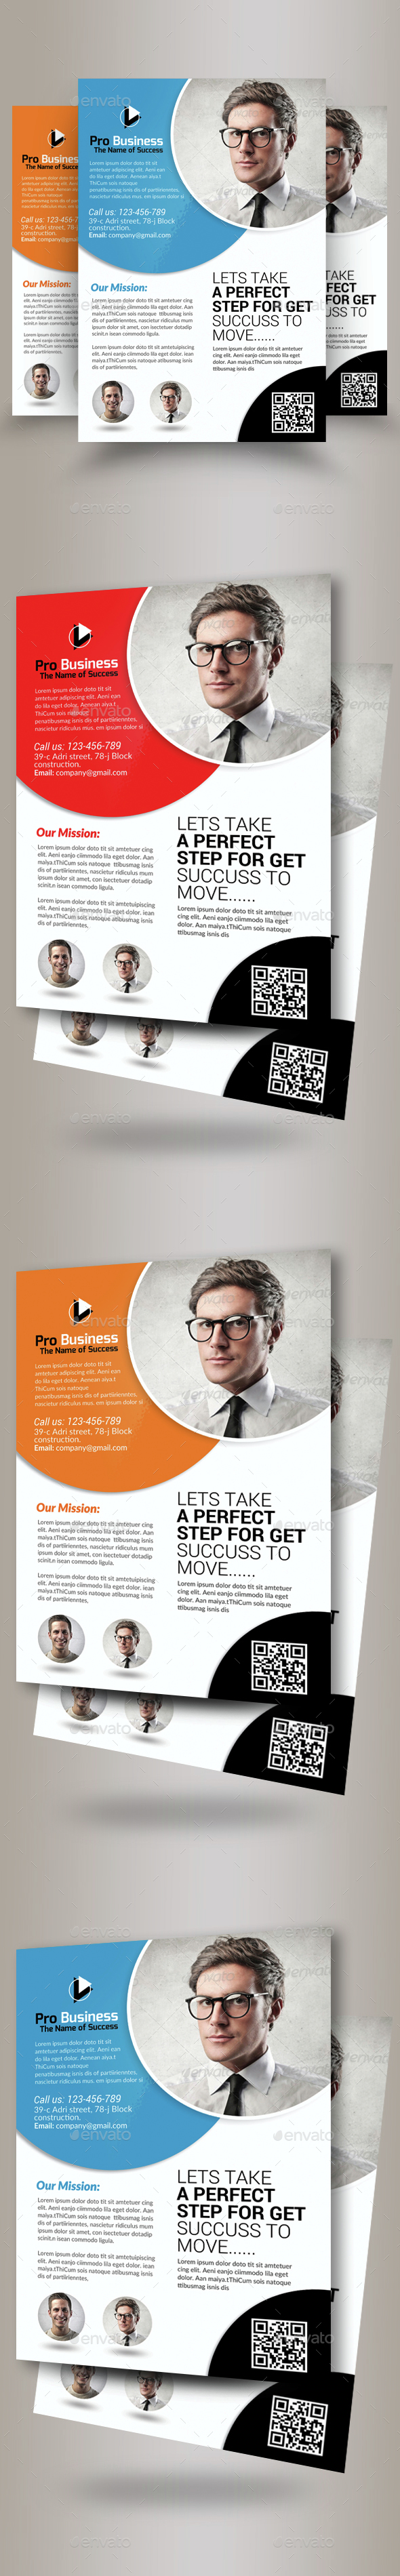 Public Relations Company Flyer Template - Corporate Flyers